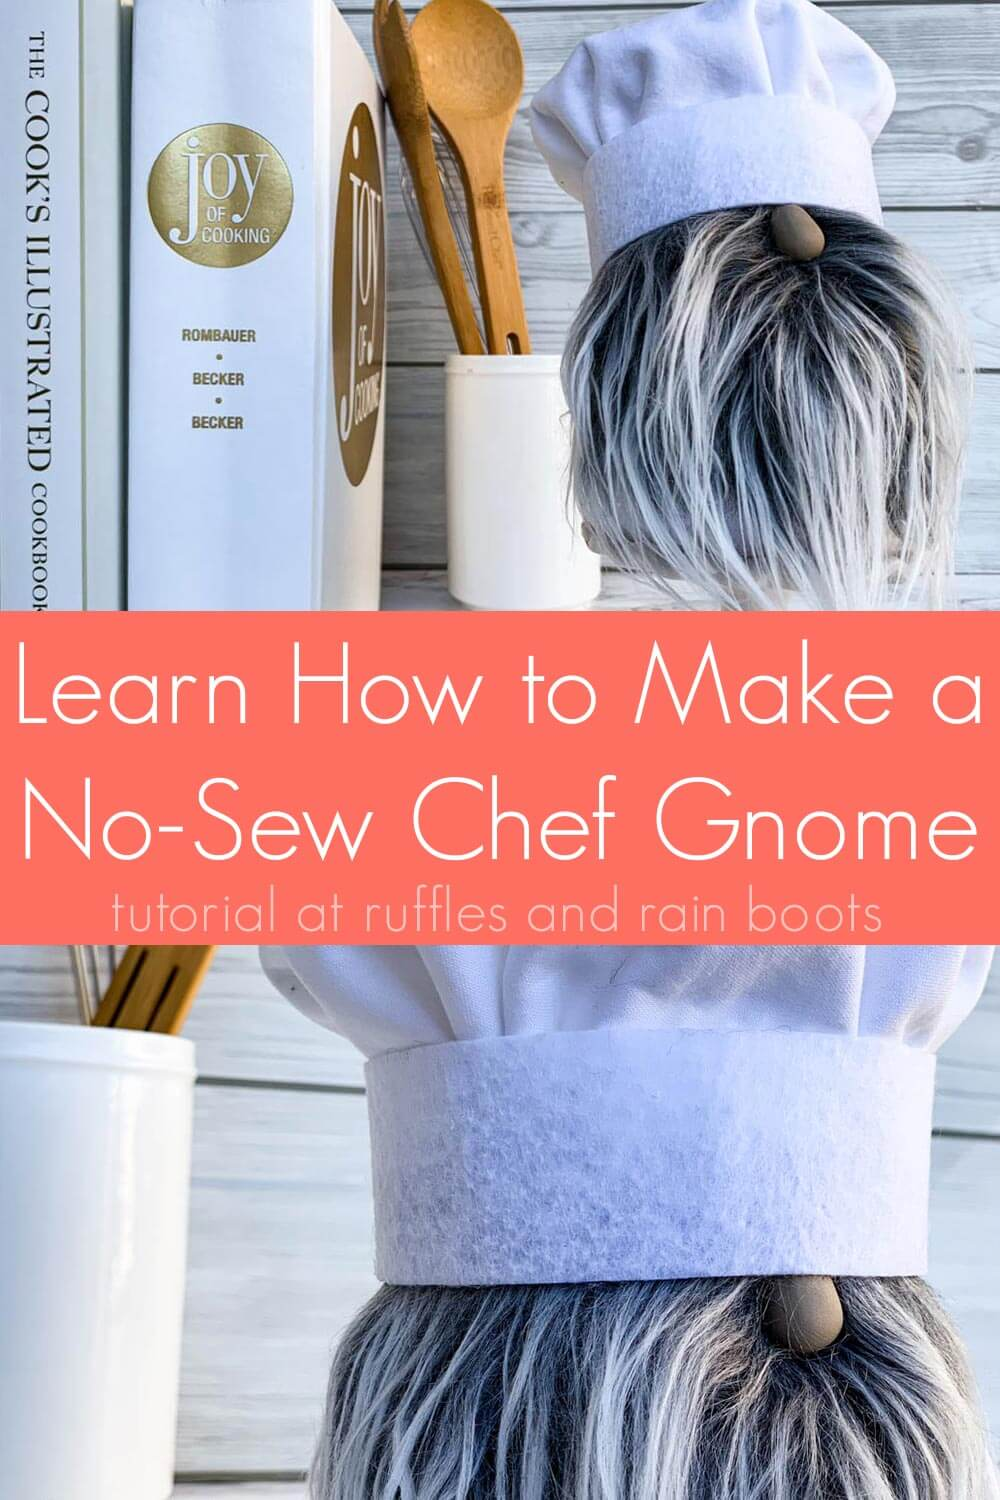 collage of chef gnome on kitchen background with text which reads learn how to make a no sew chef gnome